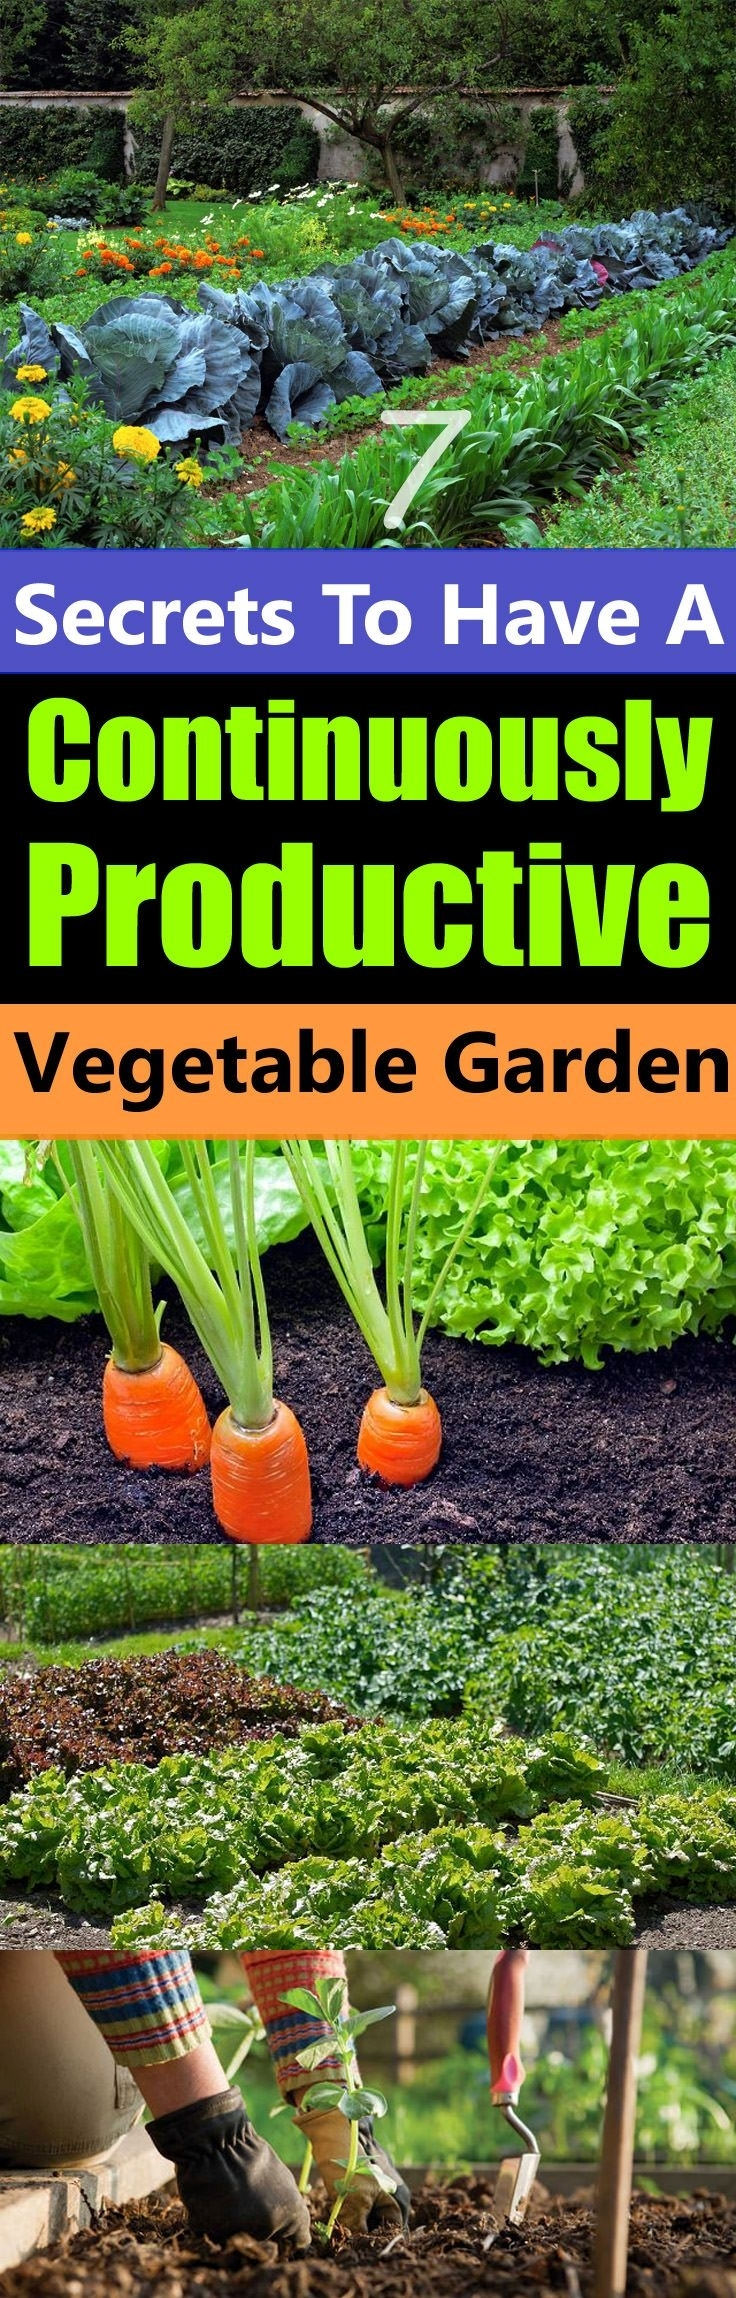 25+ Best Ideas About Growing Vegetables On Pinterest | How To Grow intended for Garden Of Light Natural Foods Avon Ct